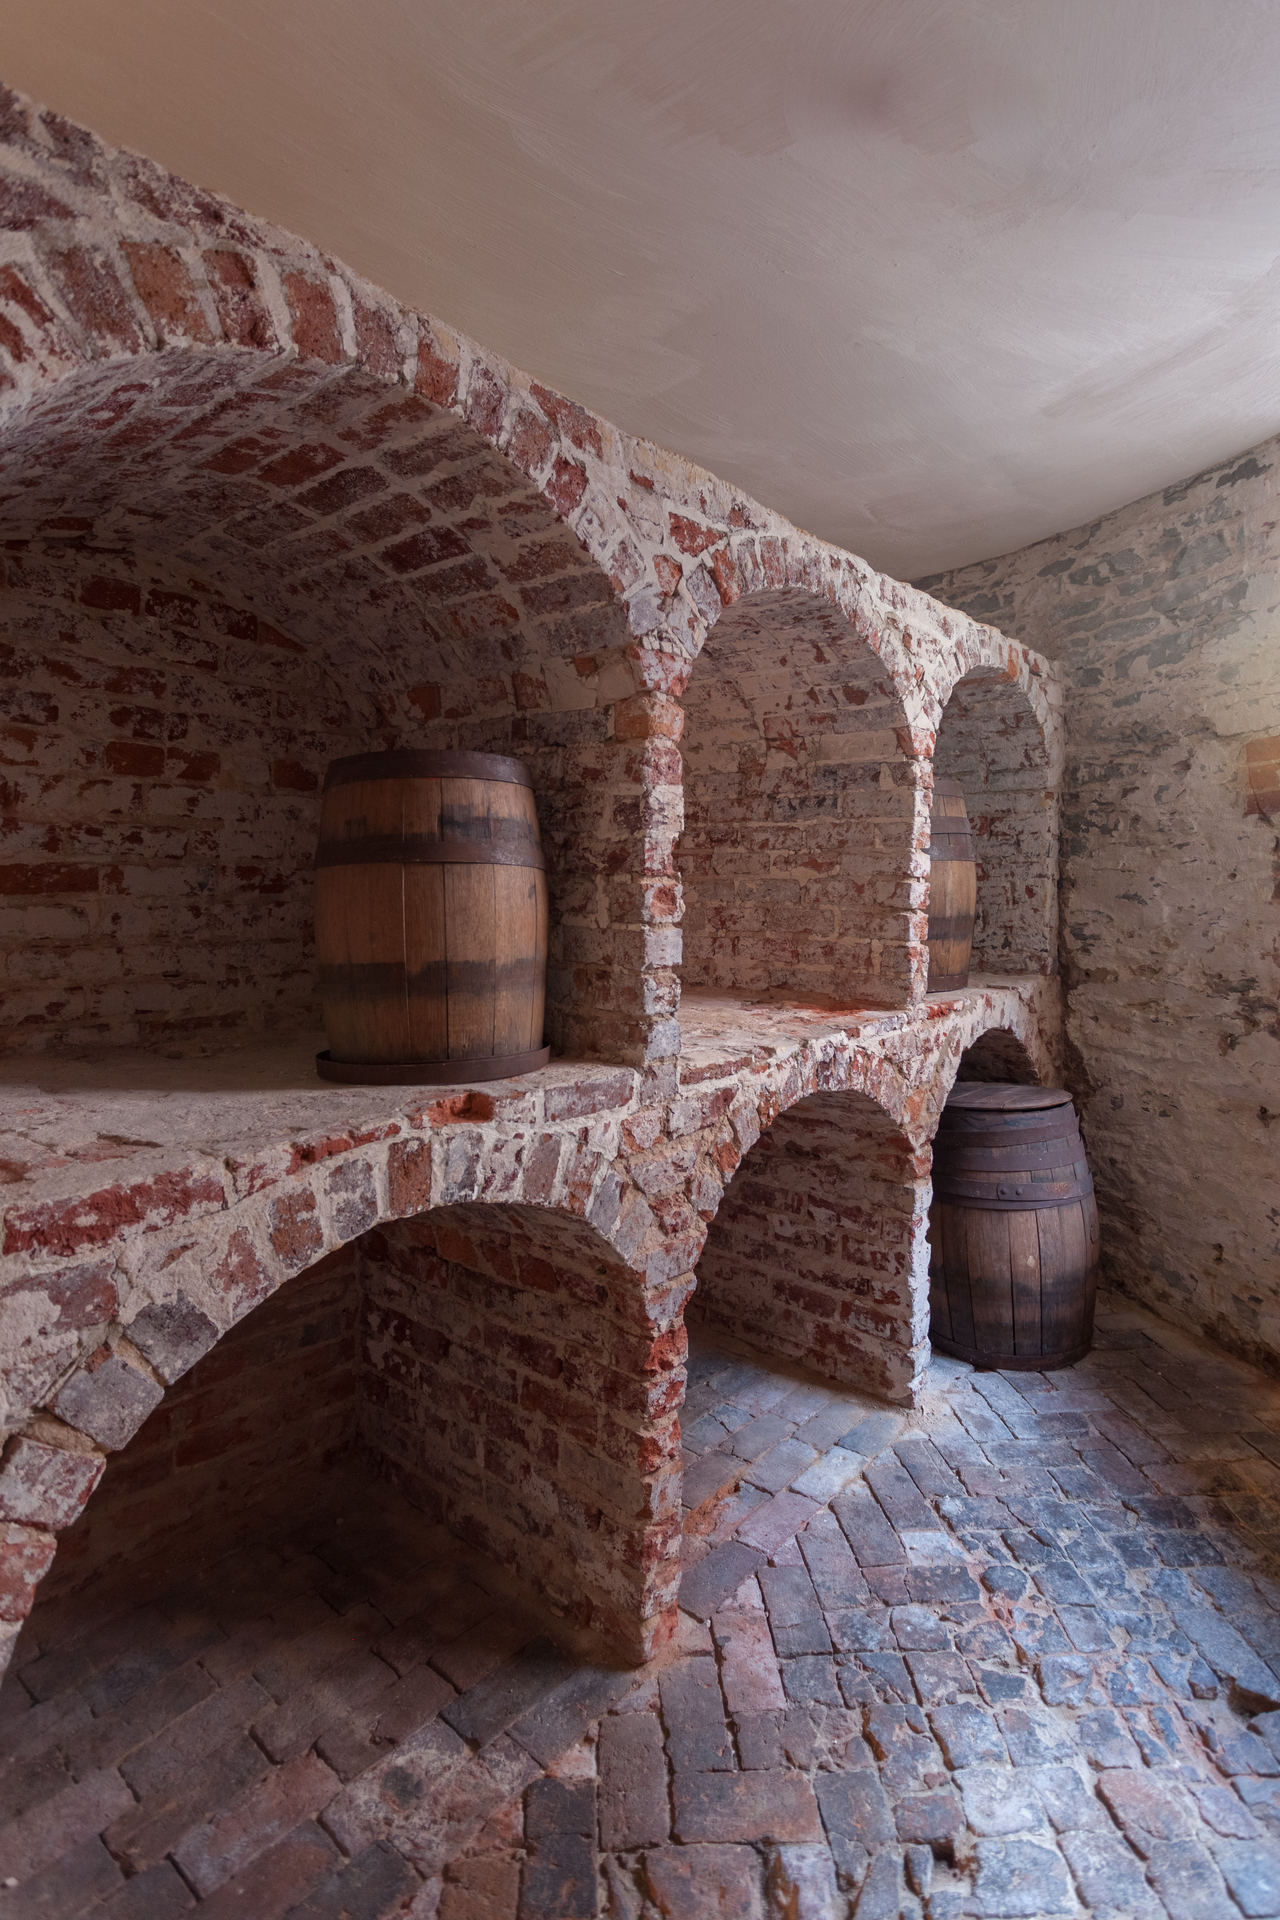 """The presence of a vaulted storage area is evidence that this was the Octagon's wine cellar.  Families like the Tayloes, who entertained frequently, placed great importance on being able to serve a wide variety of fine wines and liquors.  Alcoholic beverages consumed by the Tayloes and their contemporaries included wine, champagne, French and fruit brandies, claret, rum, whiskey, and gin as well as ales and beers.  John Tayloe clearly invested both money and time in purchasing the wine for his cellar and thought his collection valuable enough to be included in his will, specifying that, """"I wish my Stock of Liquors & Spirits on hand at my death to be equally divided among all my sons…"""""""